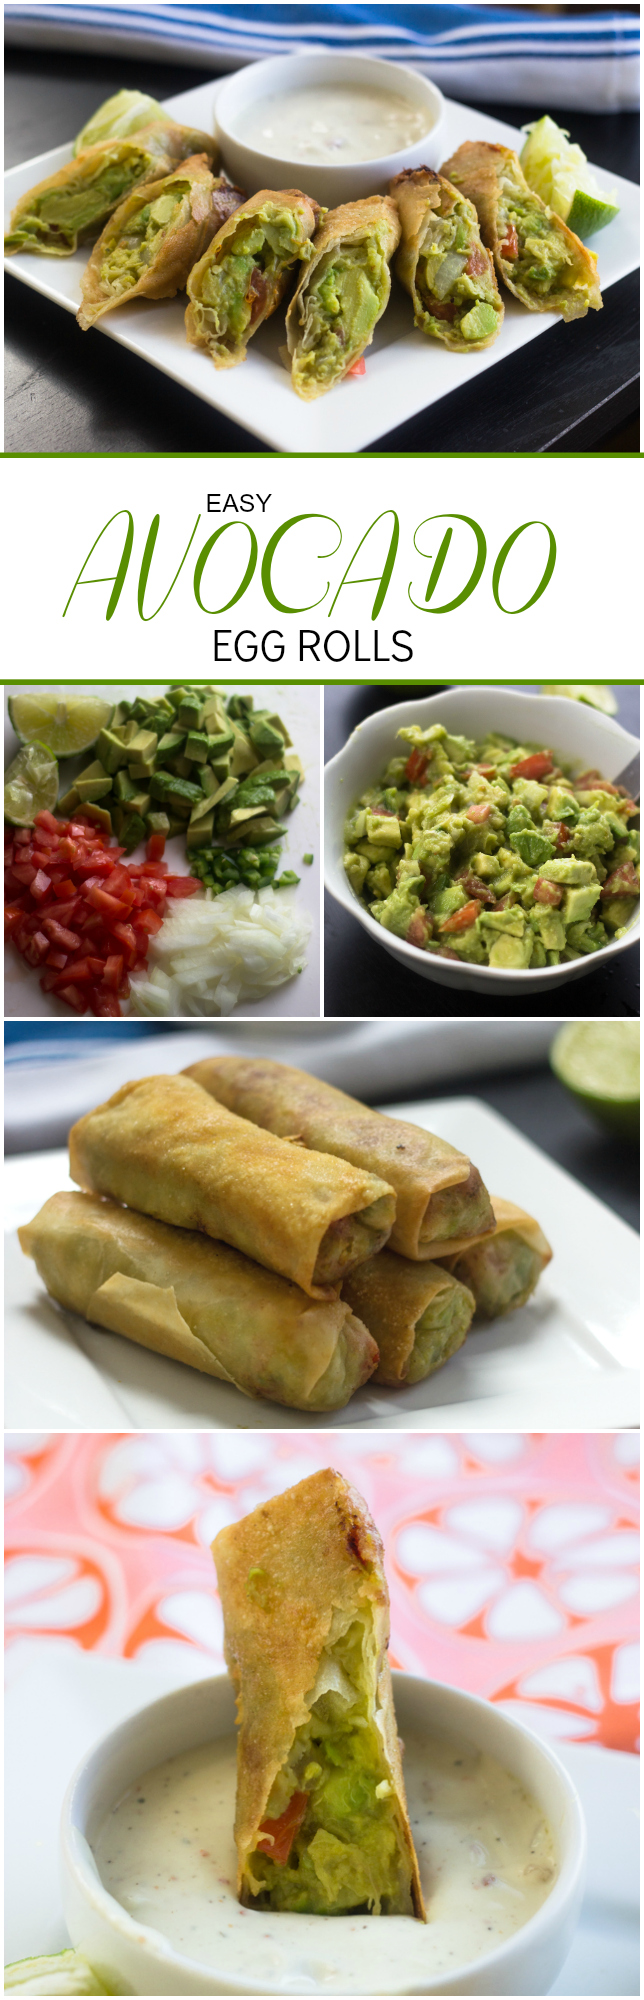 Easy Avocado Egg Rolls just like the cheesecake factory except 1000x better!!